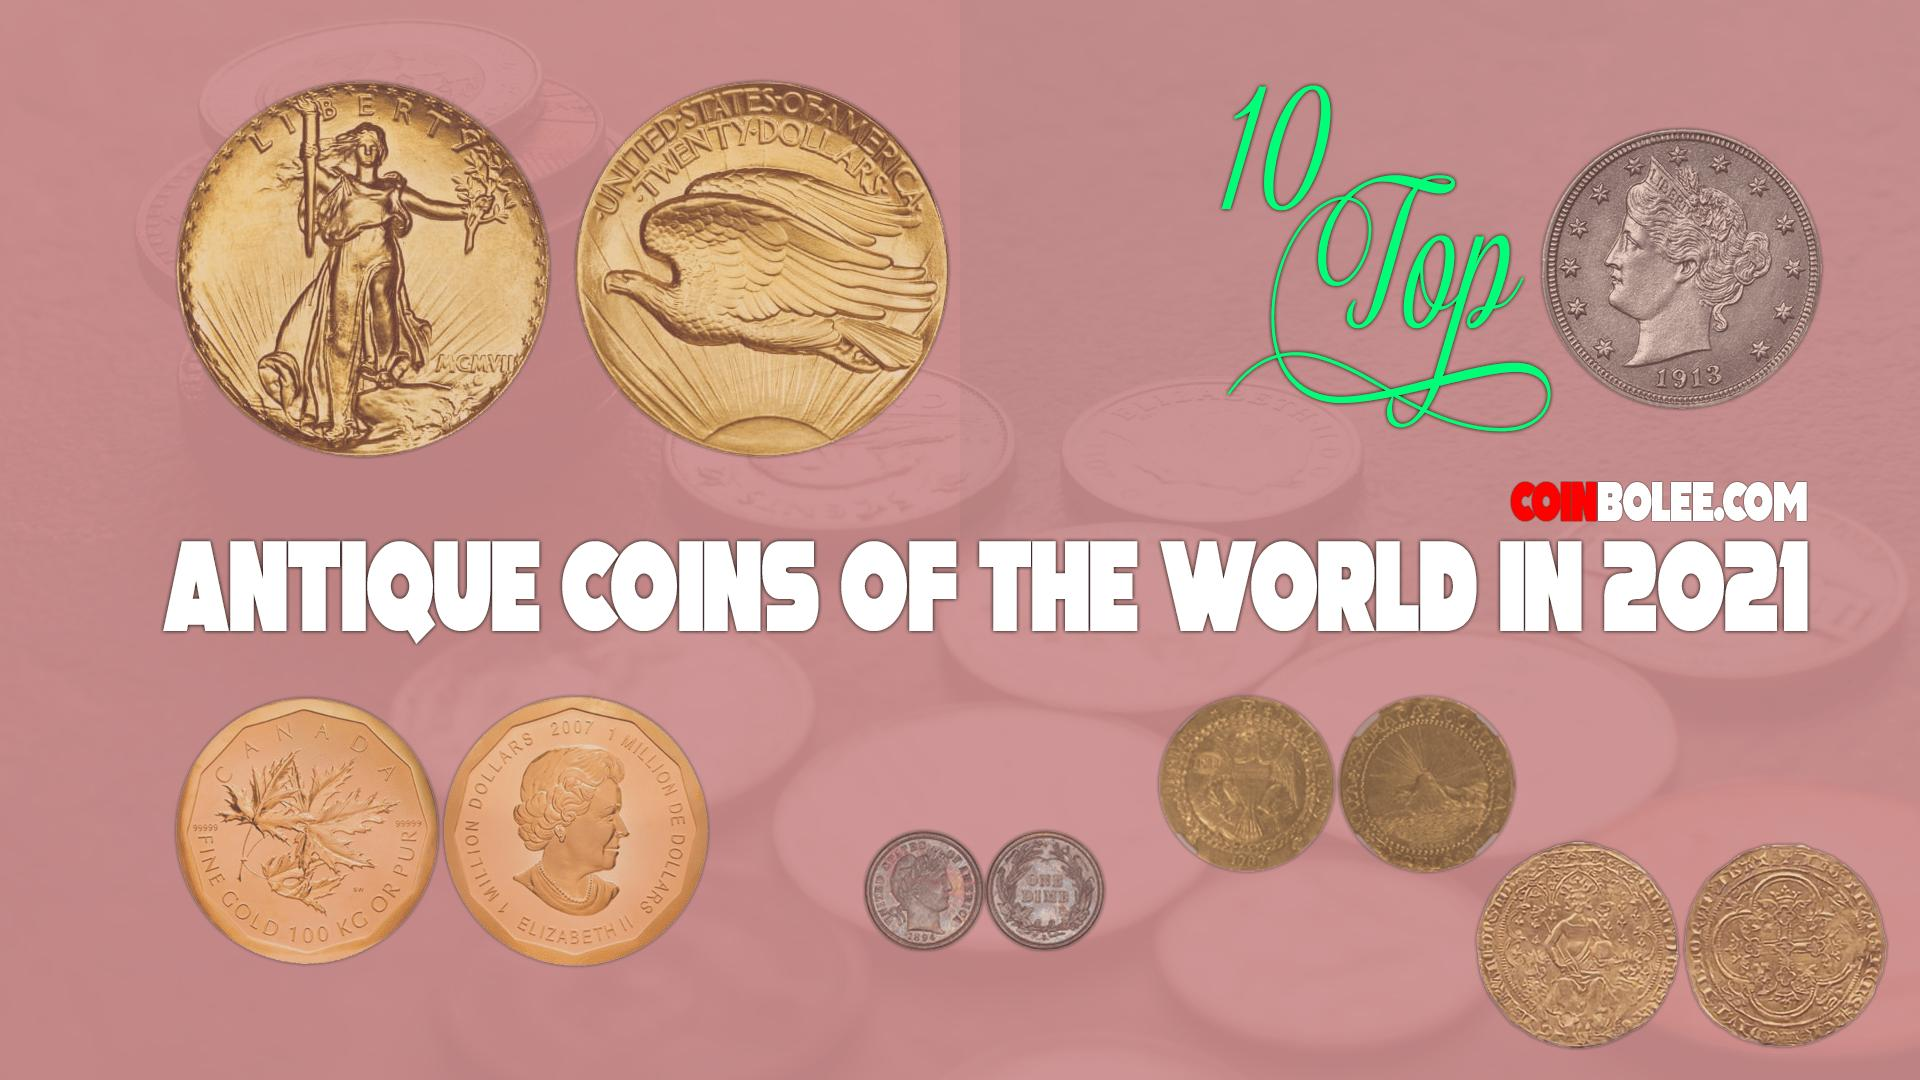 Top 10 Antique Coins of the World in 2021